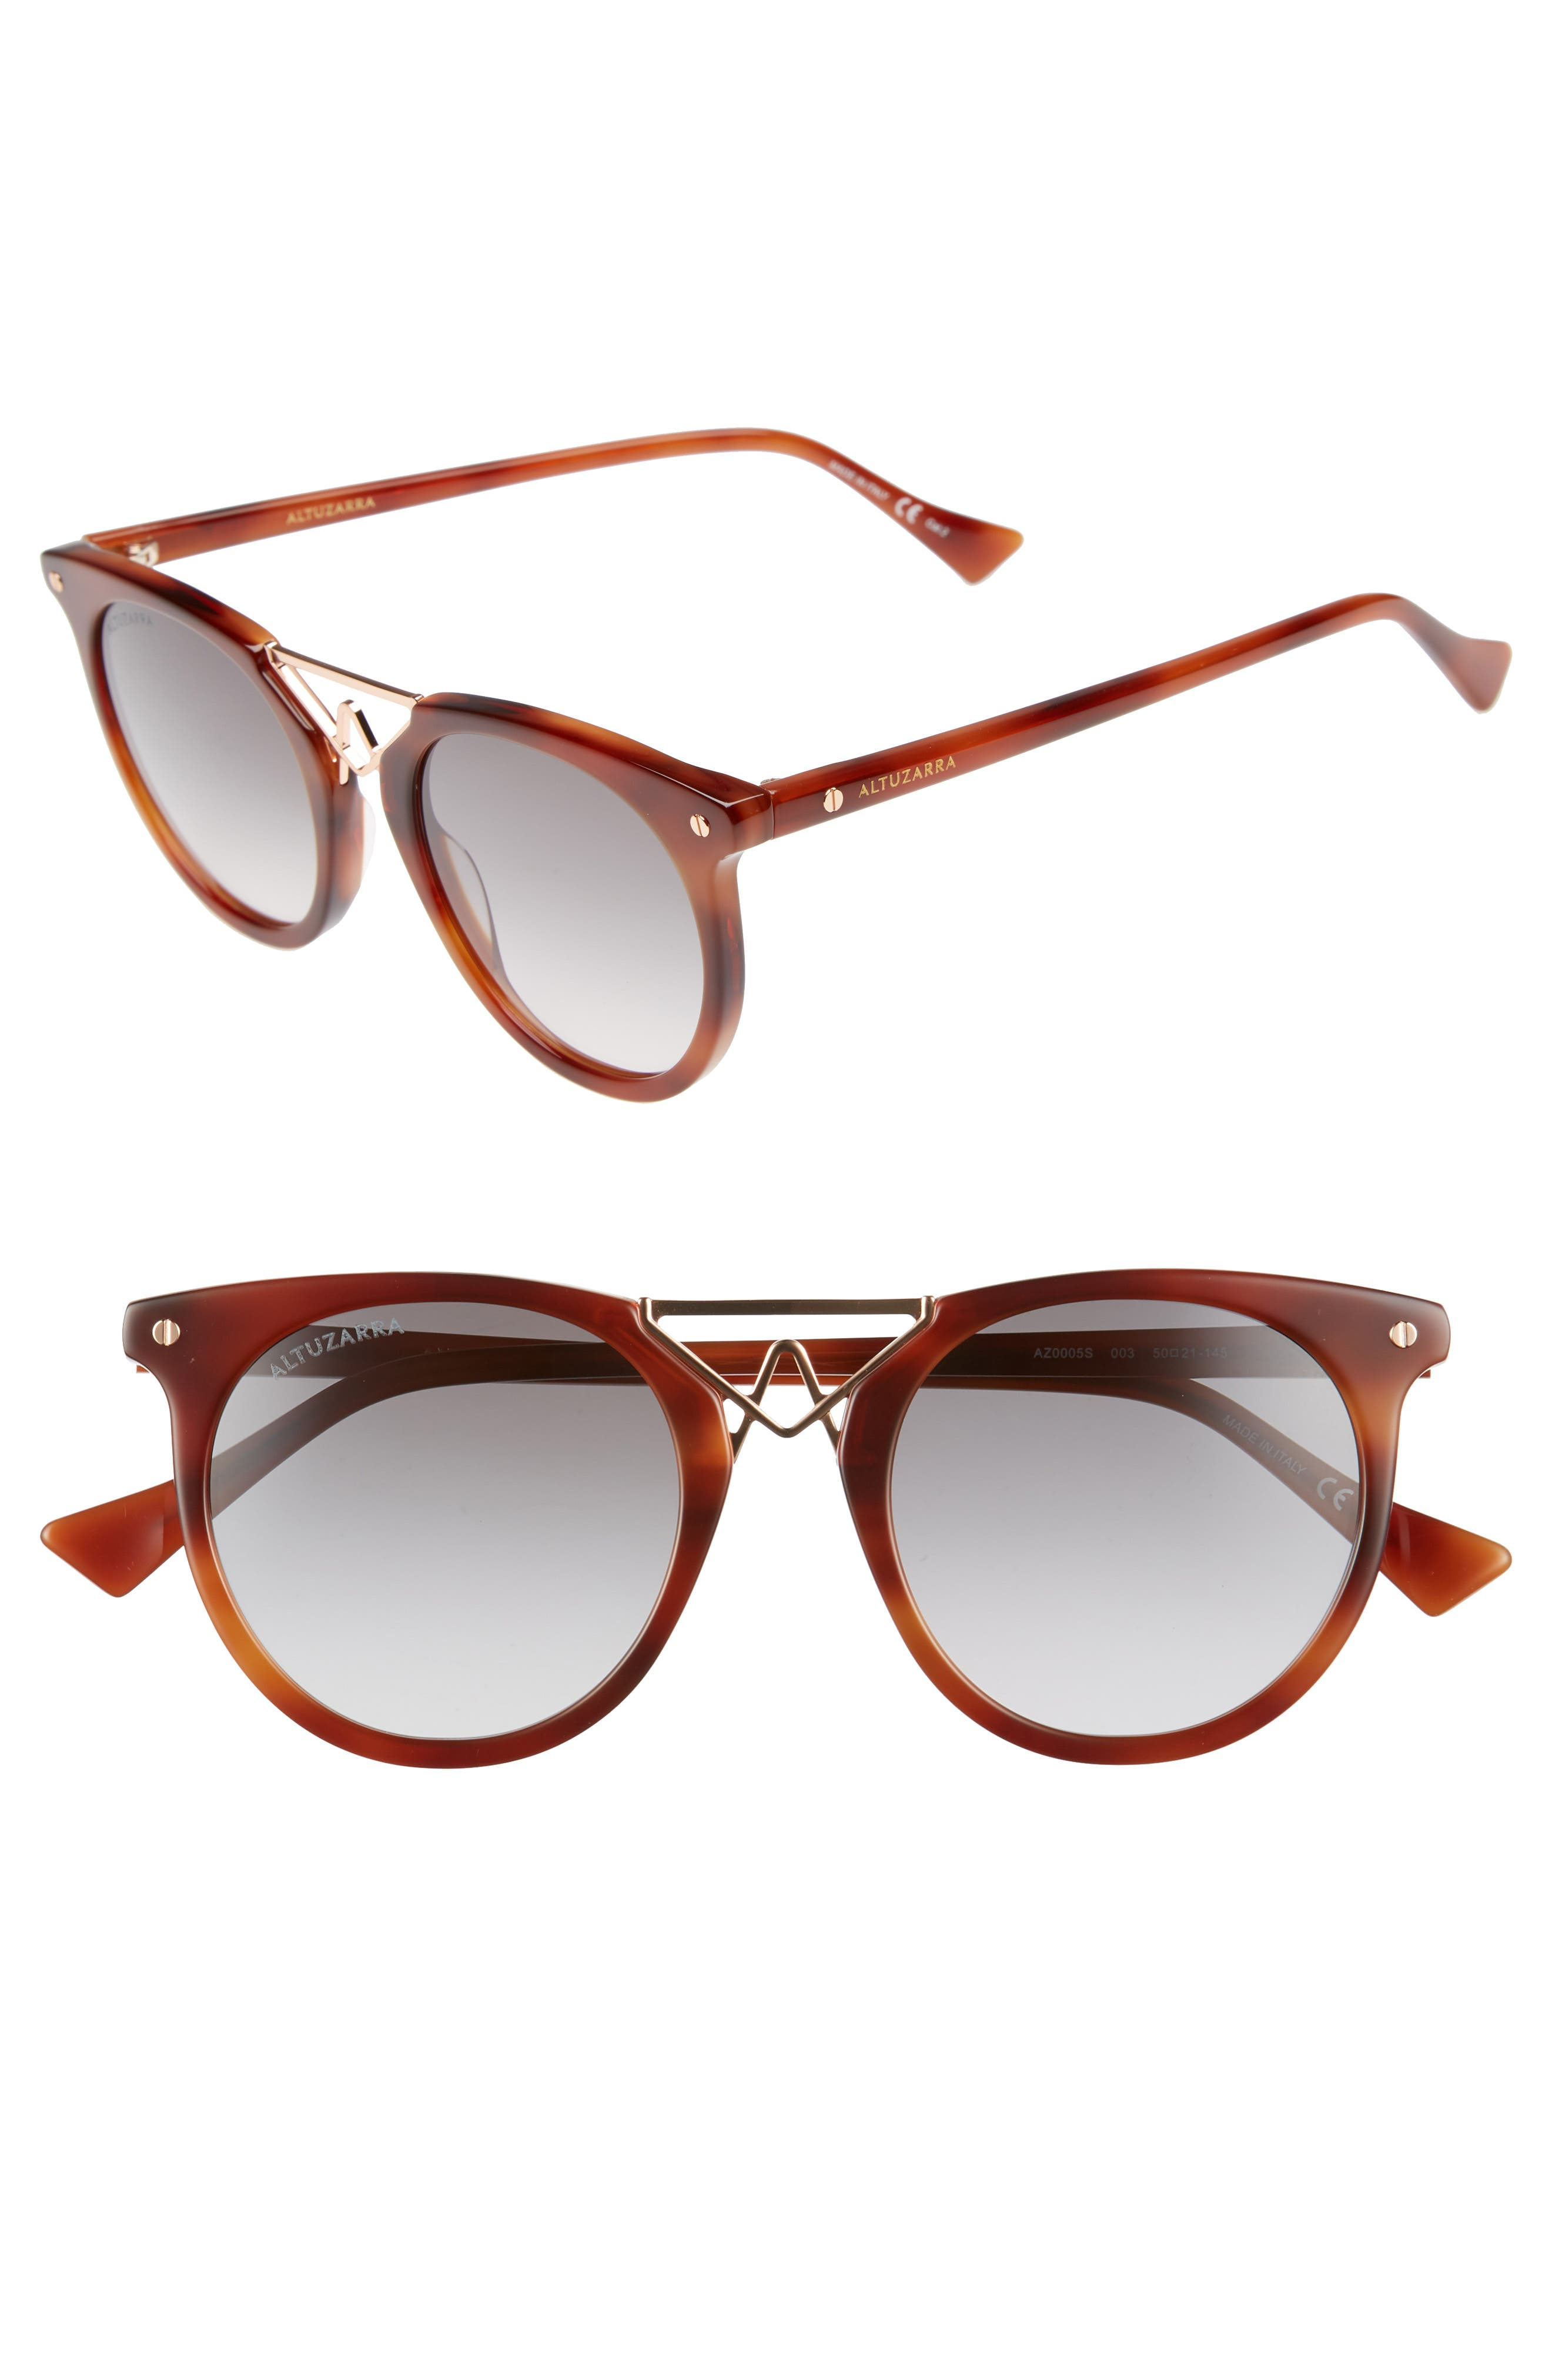 50mm Round Sunglasses,                         Main,                         color, Havana/ Rose Gold